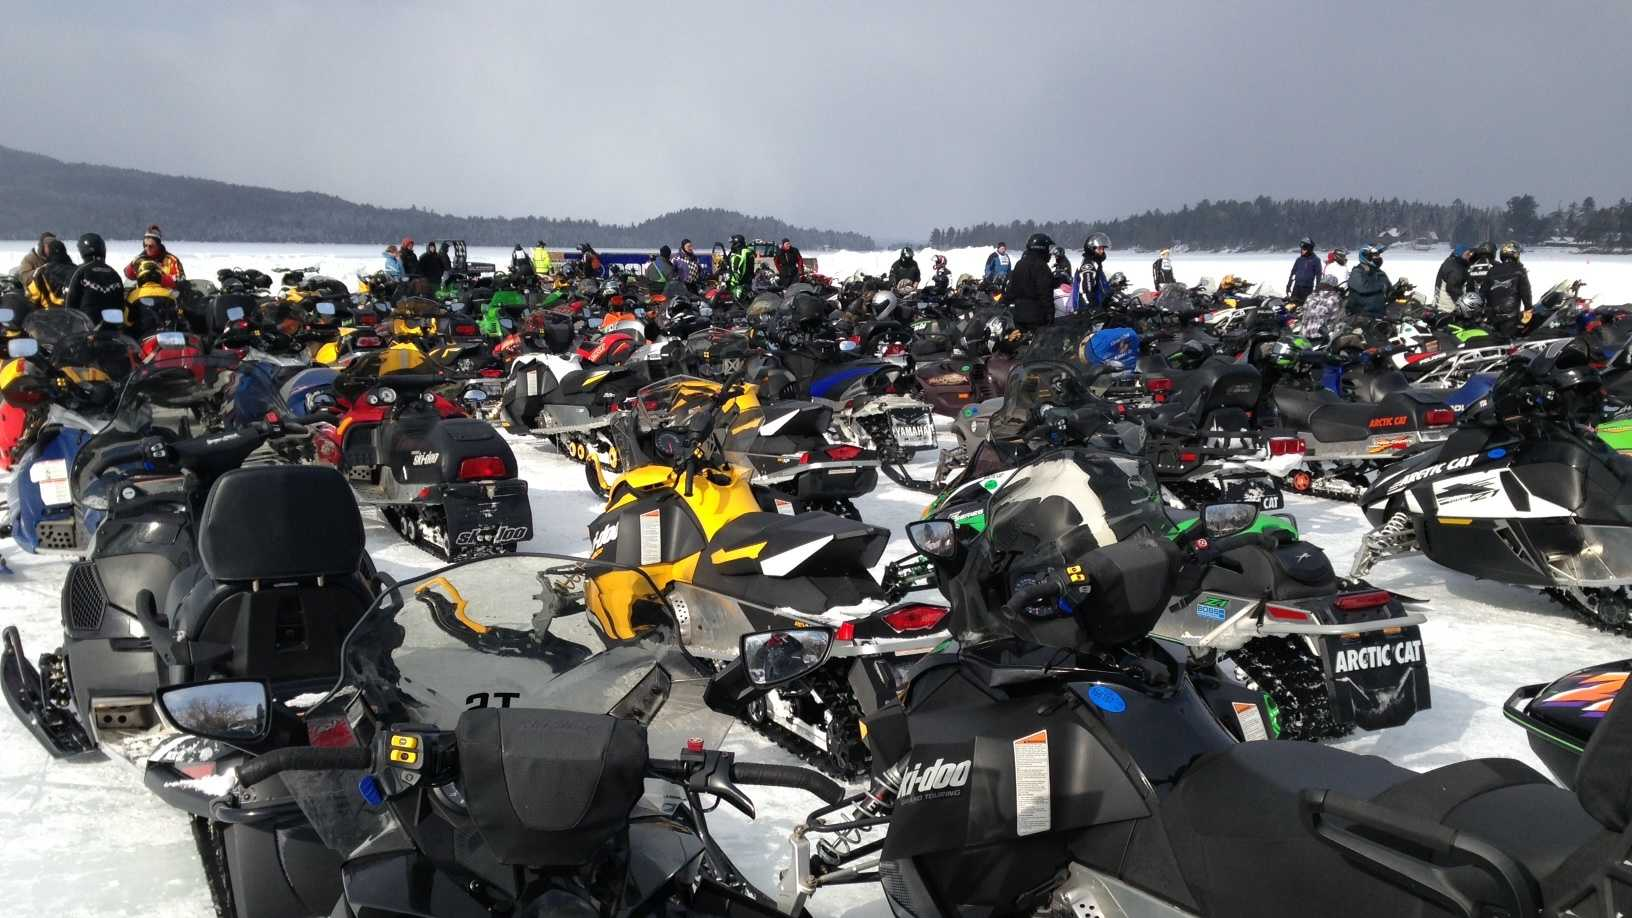 Snowmobile Rally in Rangeley